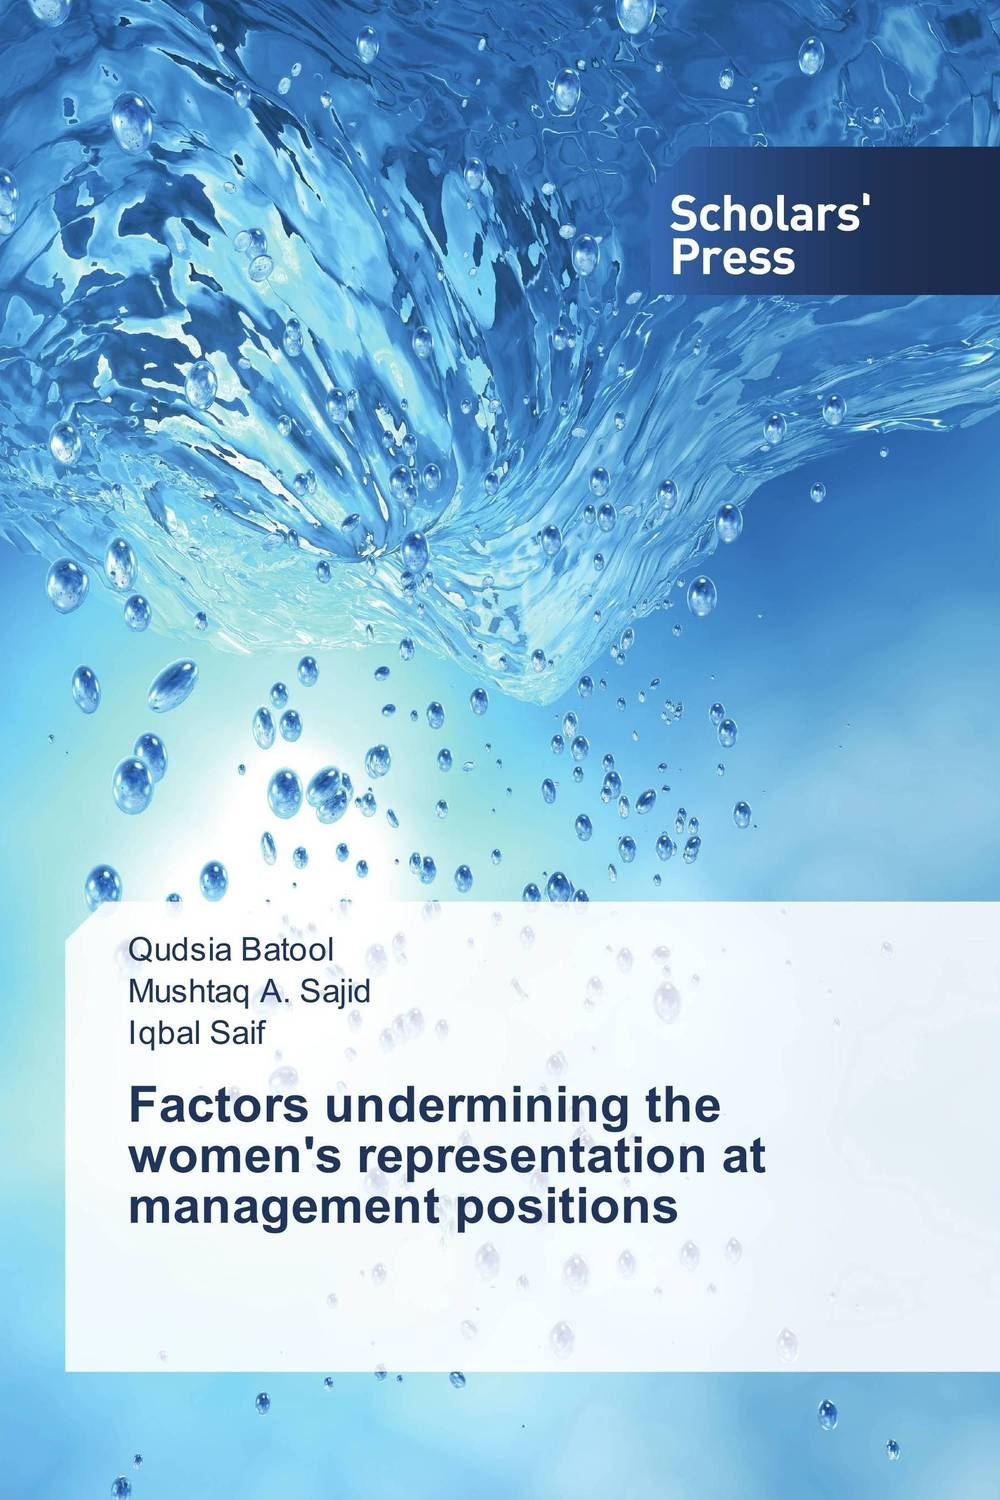 Factors undermining the women's representation at management positions